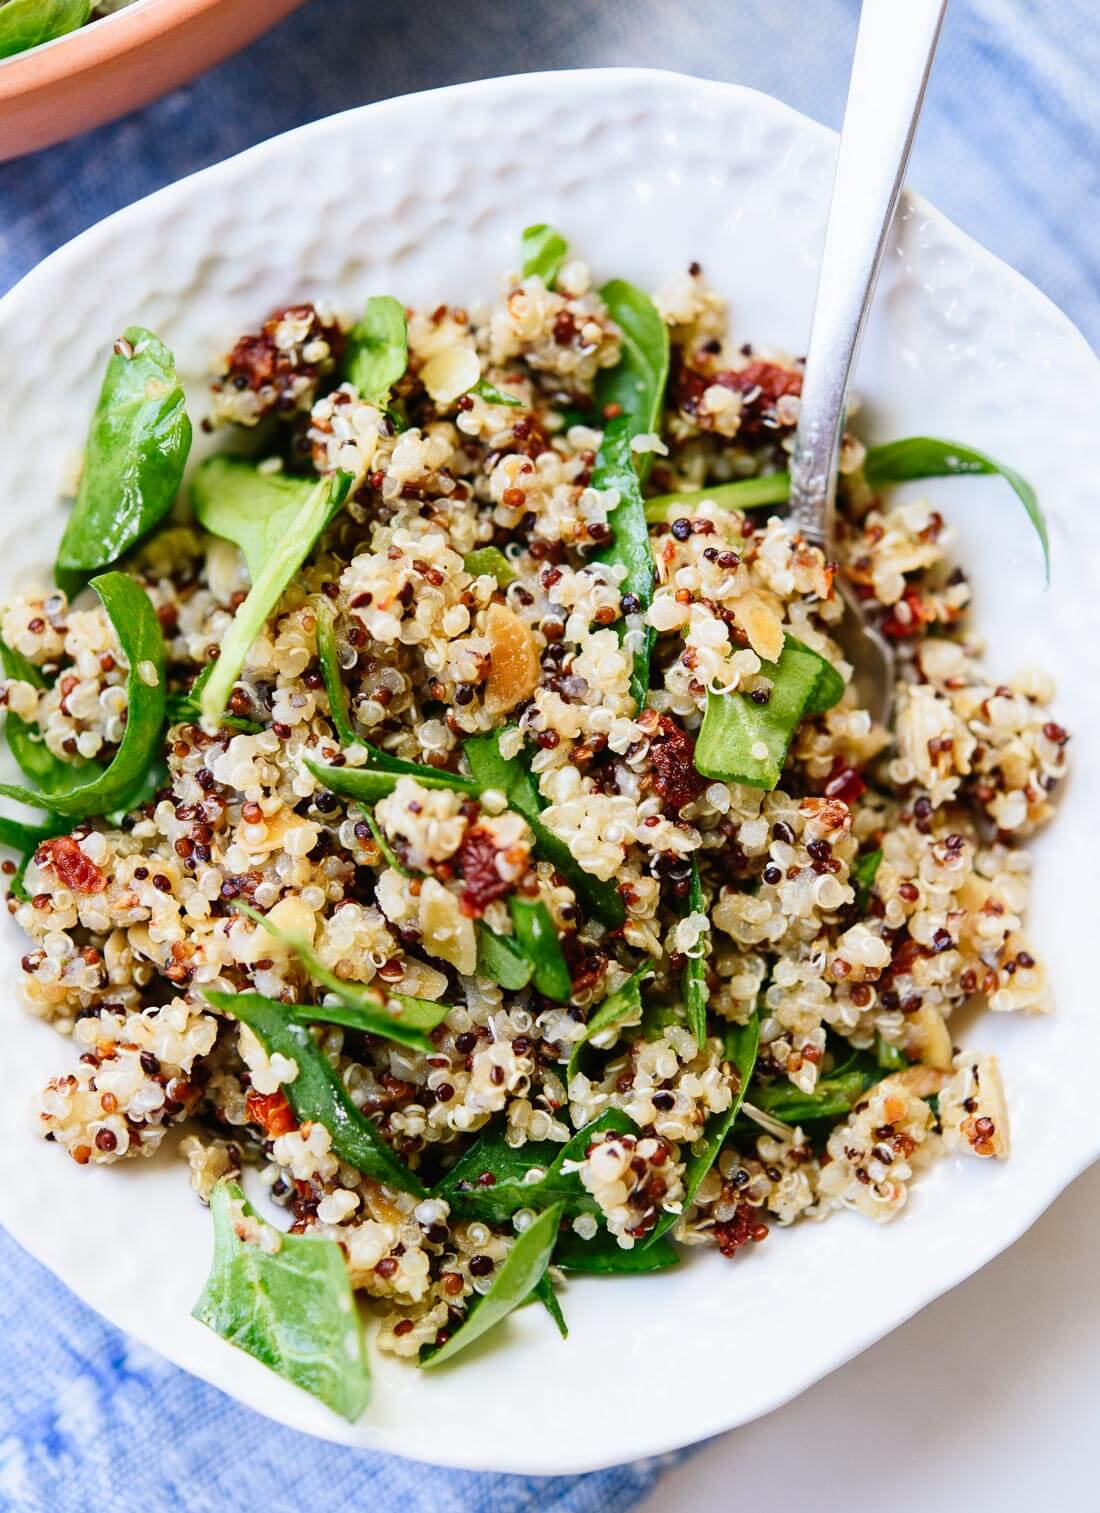 Simple sun-dried tomato, quinoa and spinach salad - cookieandkate.com